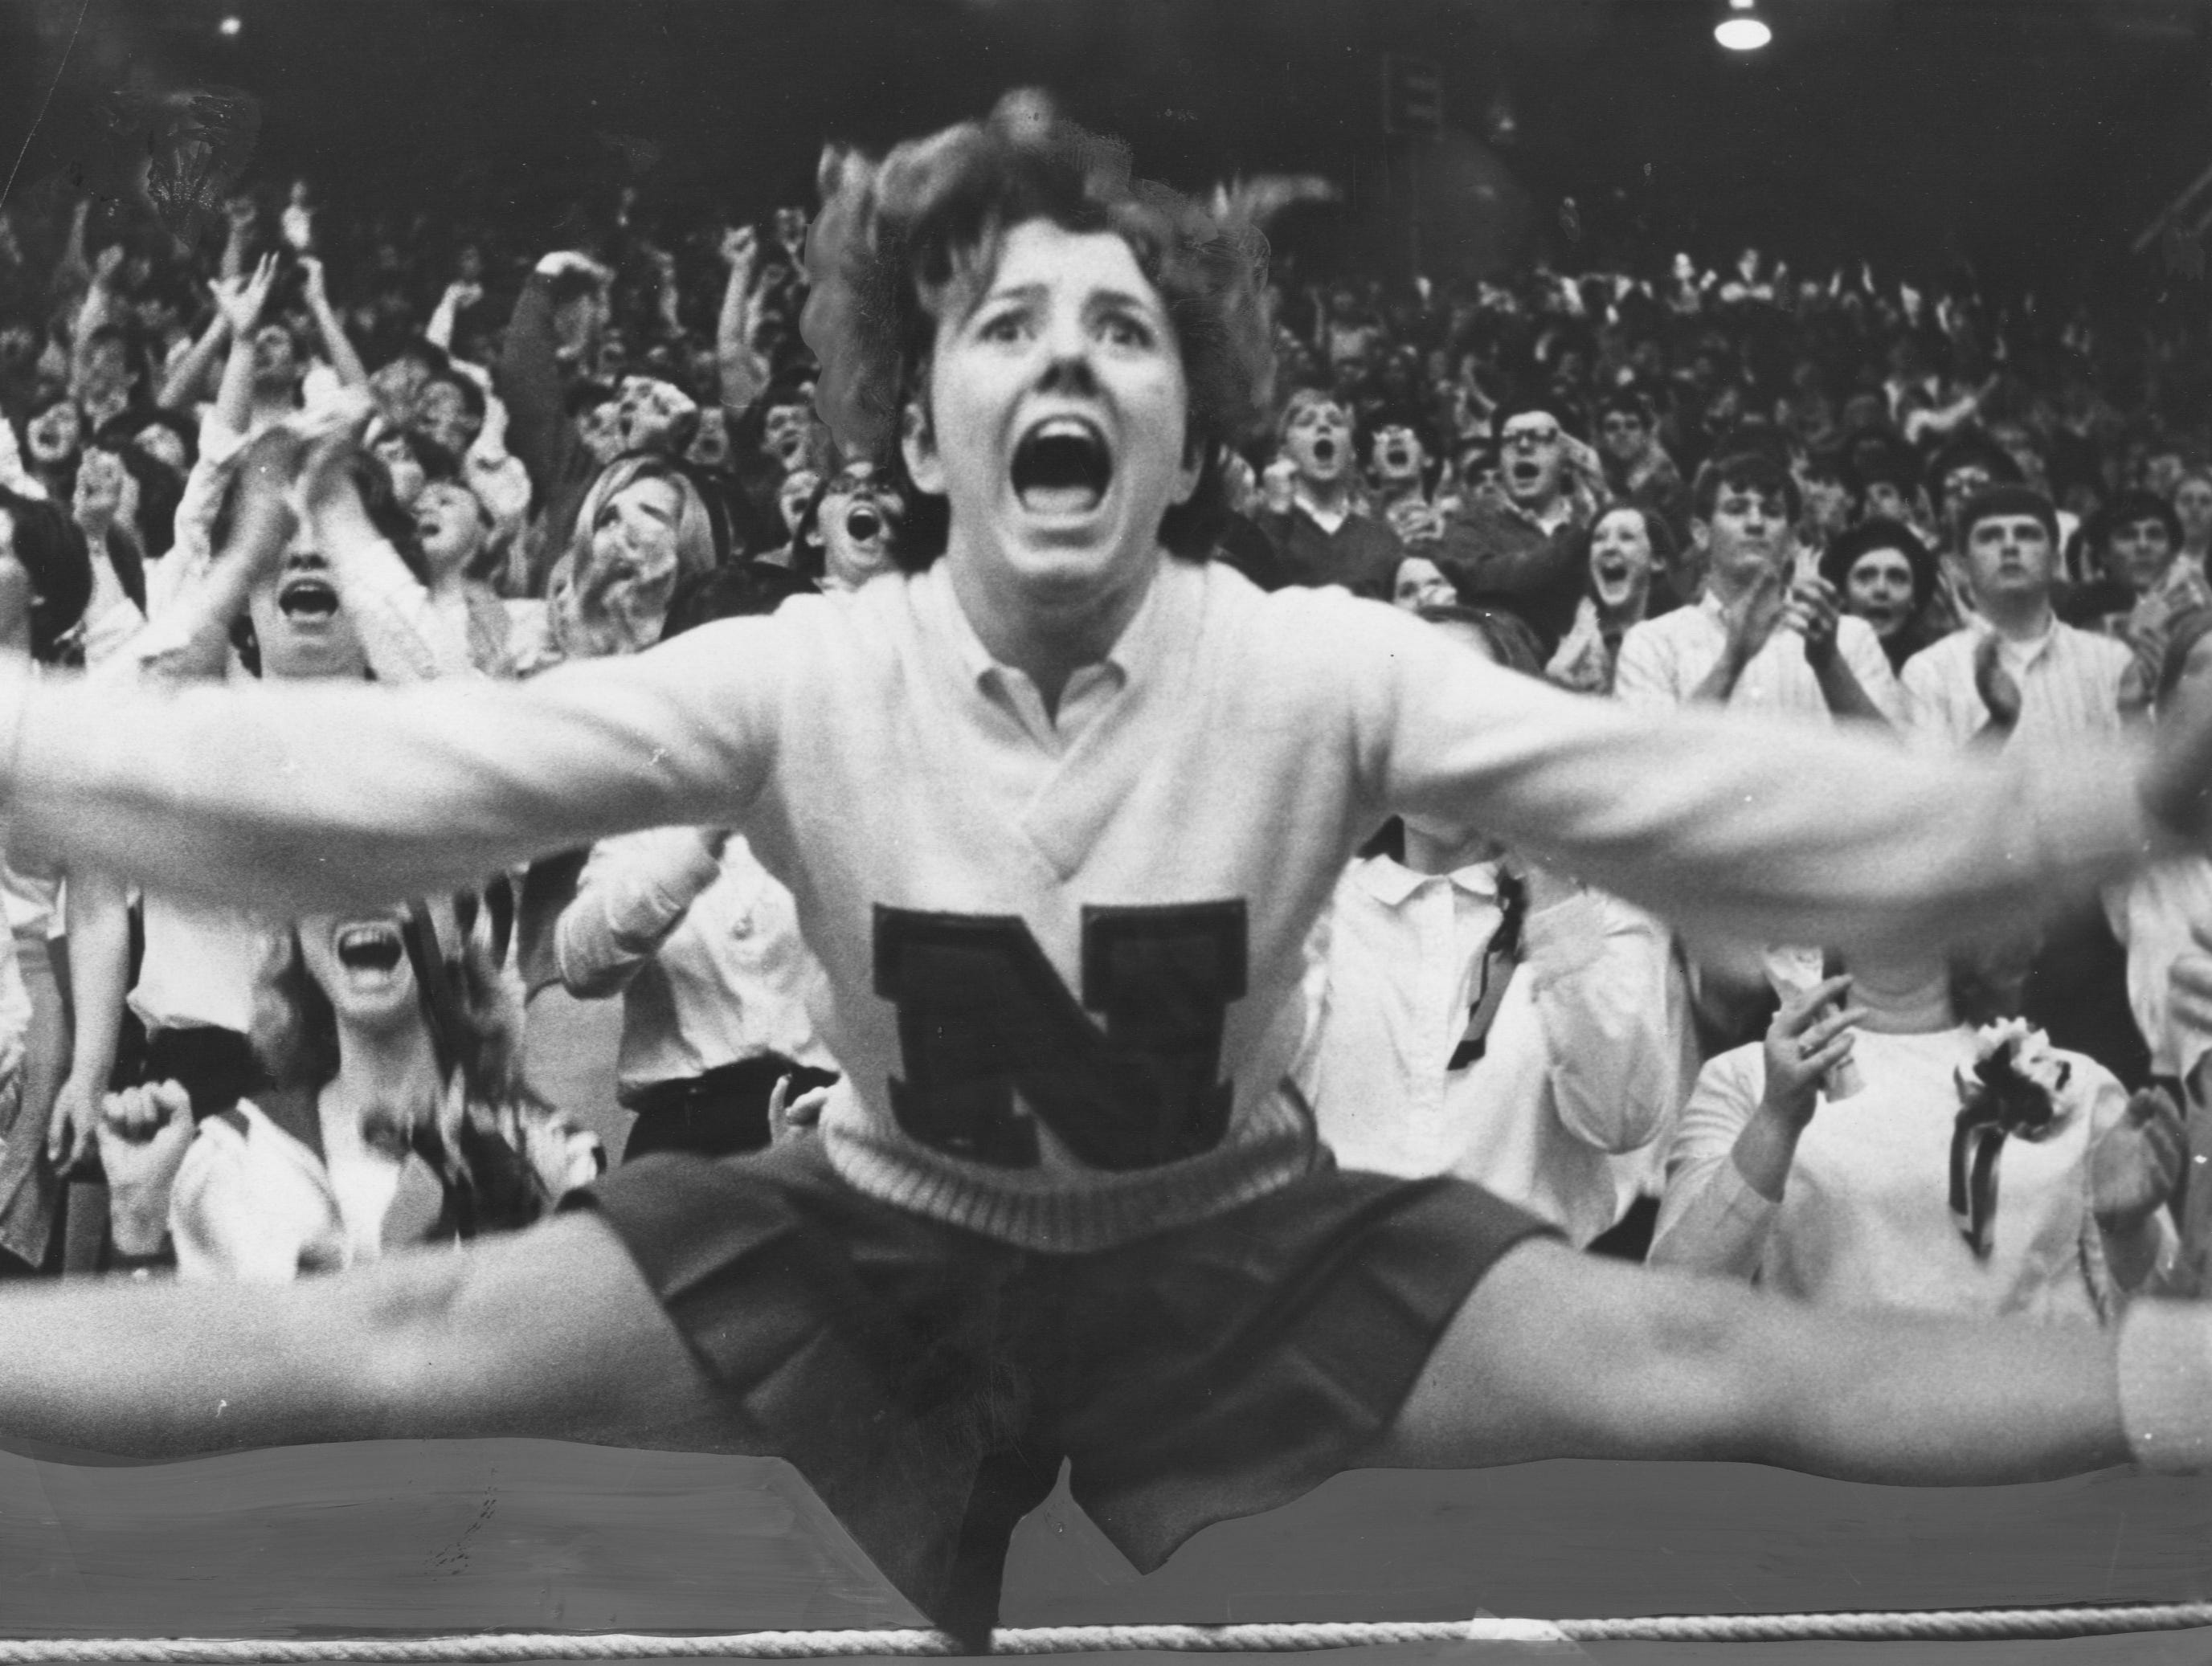 Cheerleader Brenda Sullivan goes all out to show her enthusiasm while striking up some vocal backing for New Albany's Bulldogs in yesterday's afternoon's battle with North High School. March 12, 1967